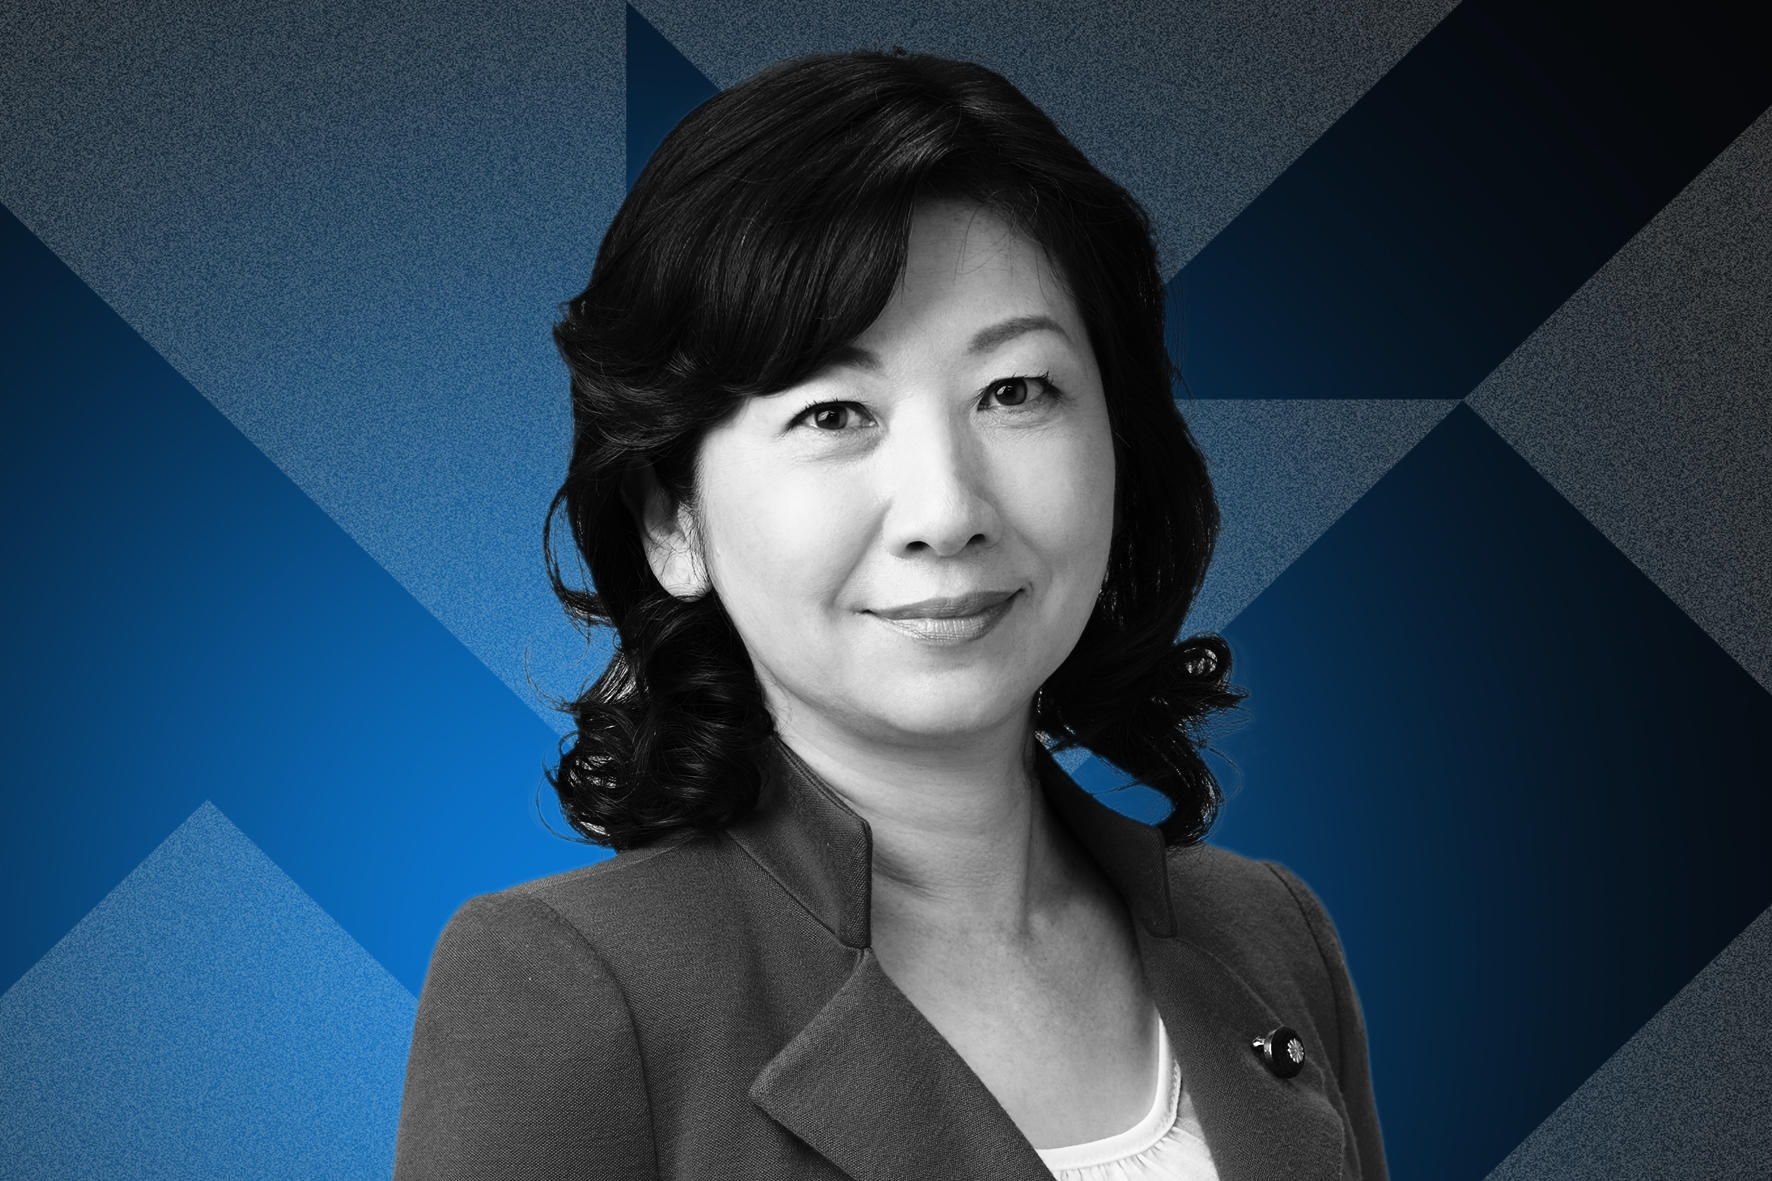 Catch Seiko Noda, Member of Parliament, Japan, at the Global Trends Festival 2020